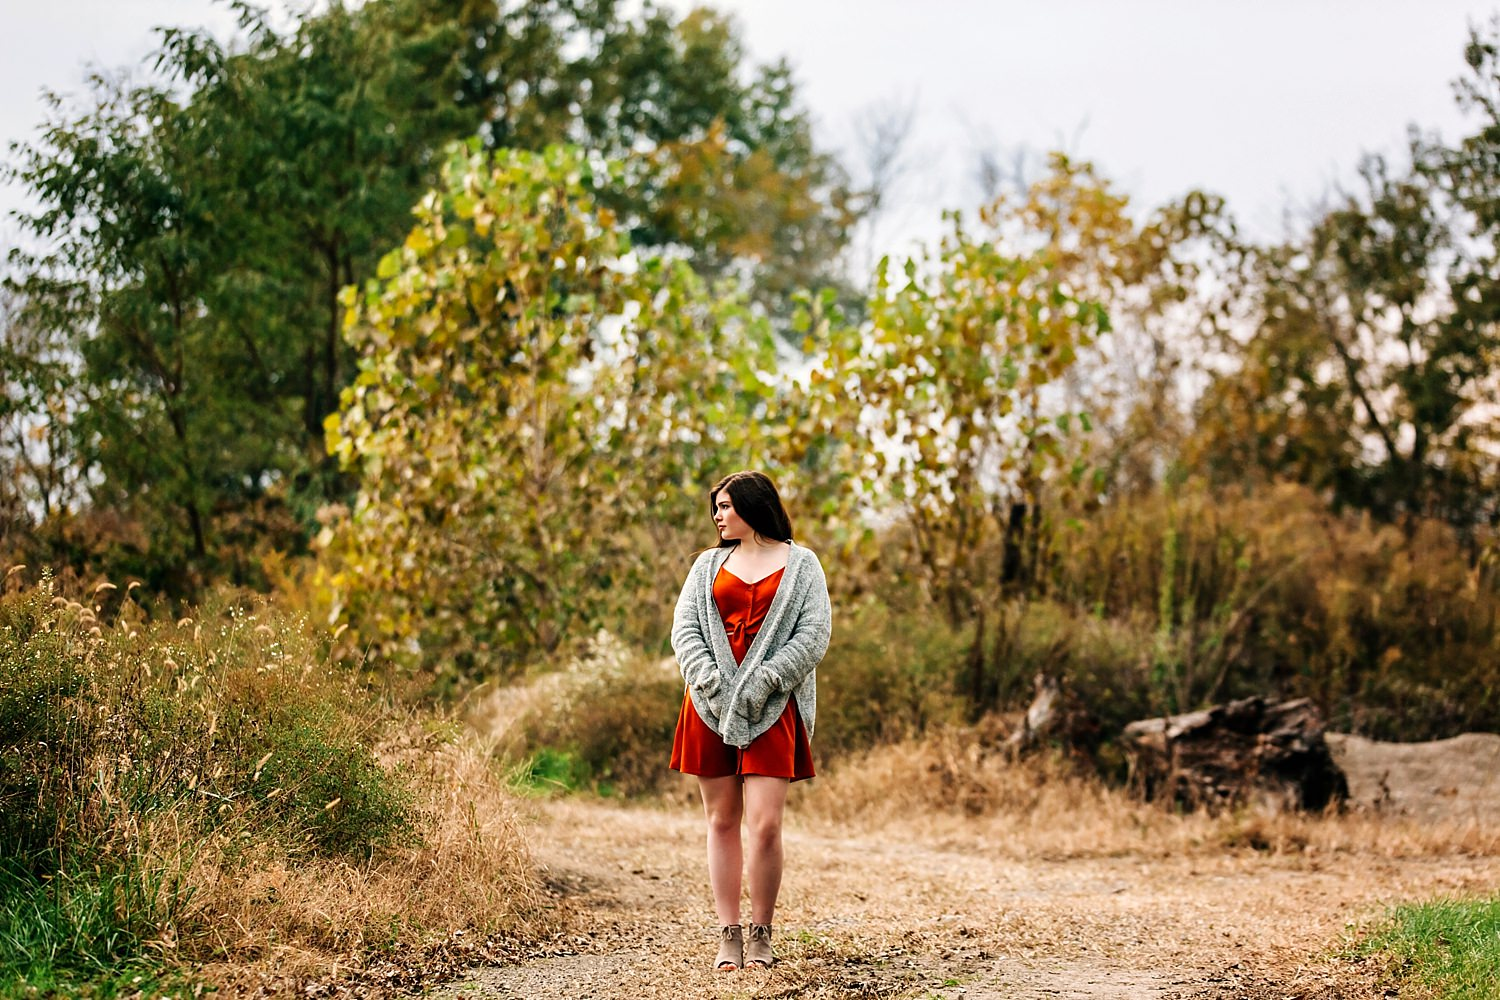 dramatic image of girl in nature for senior portraits in granville ohio by sara devere formerly sara long photography